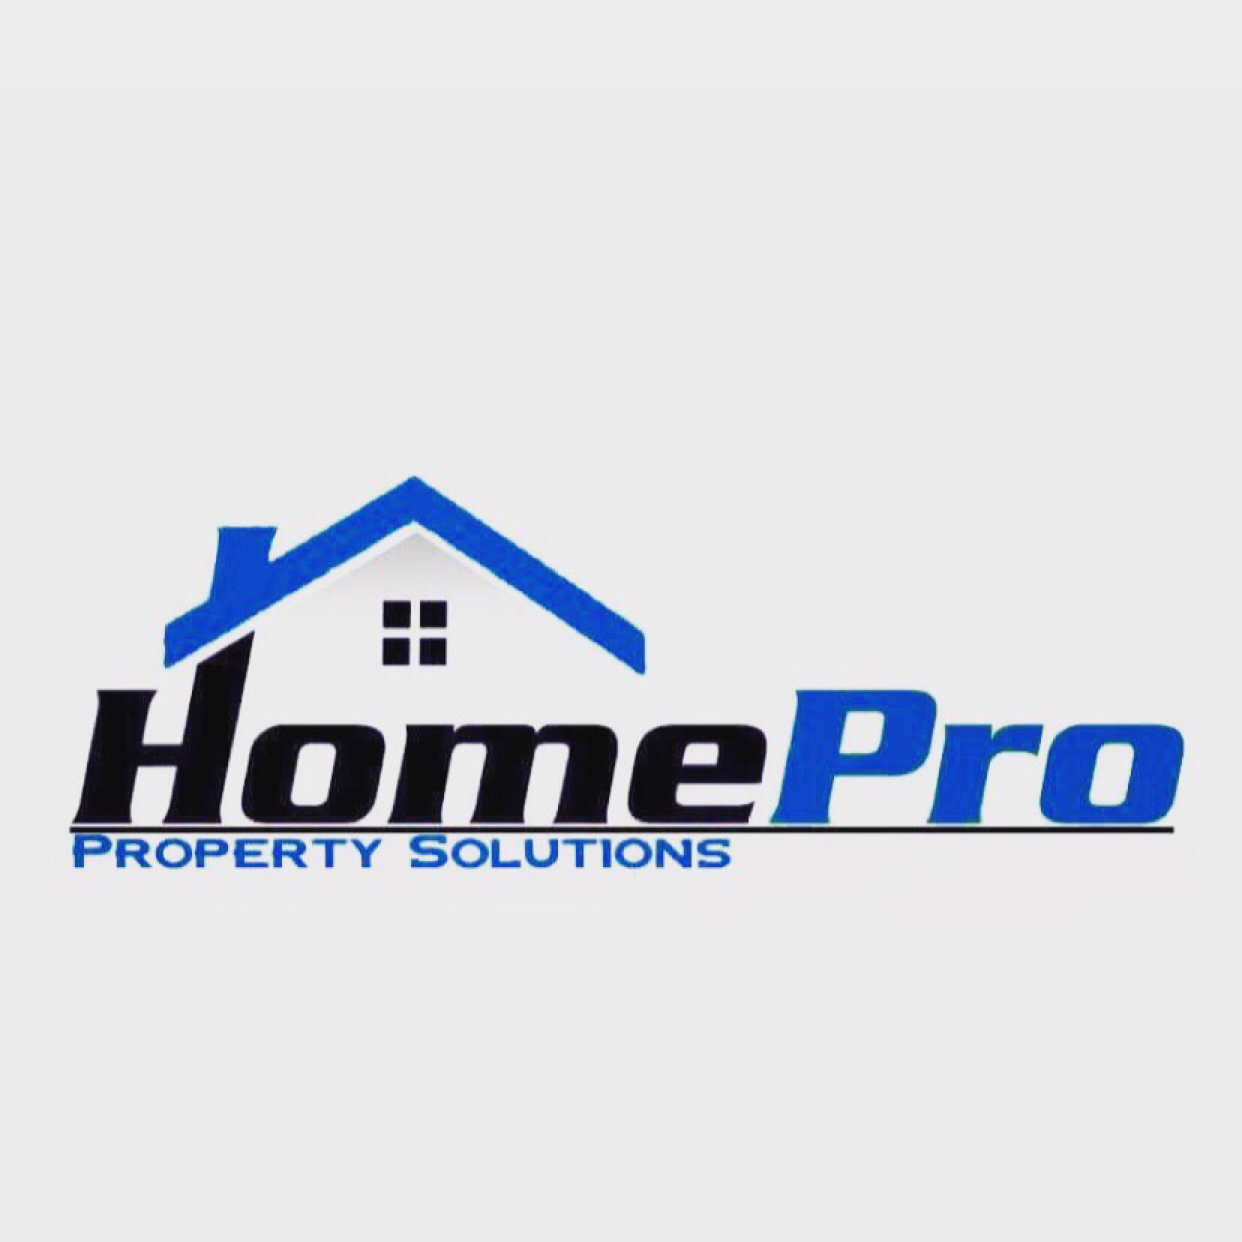 HomePro property solutions